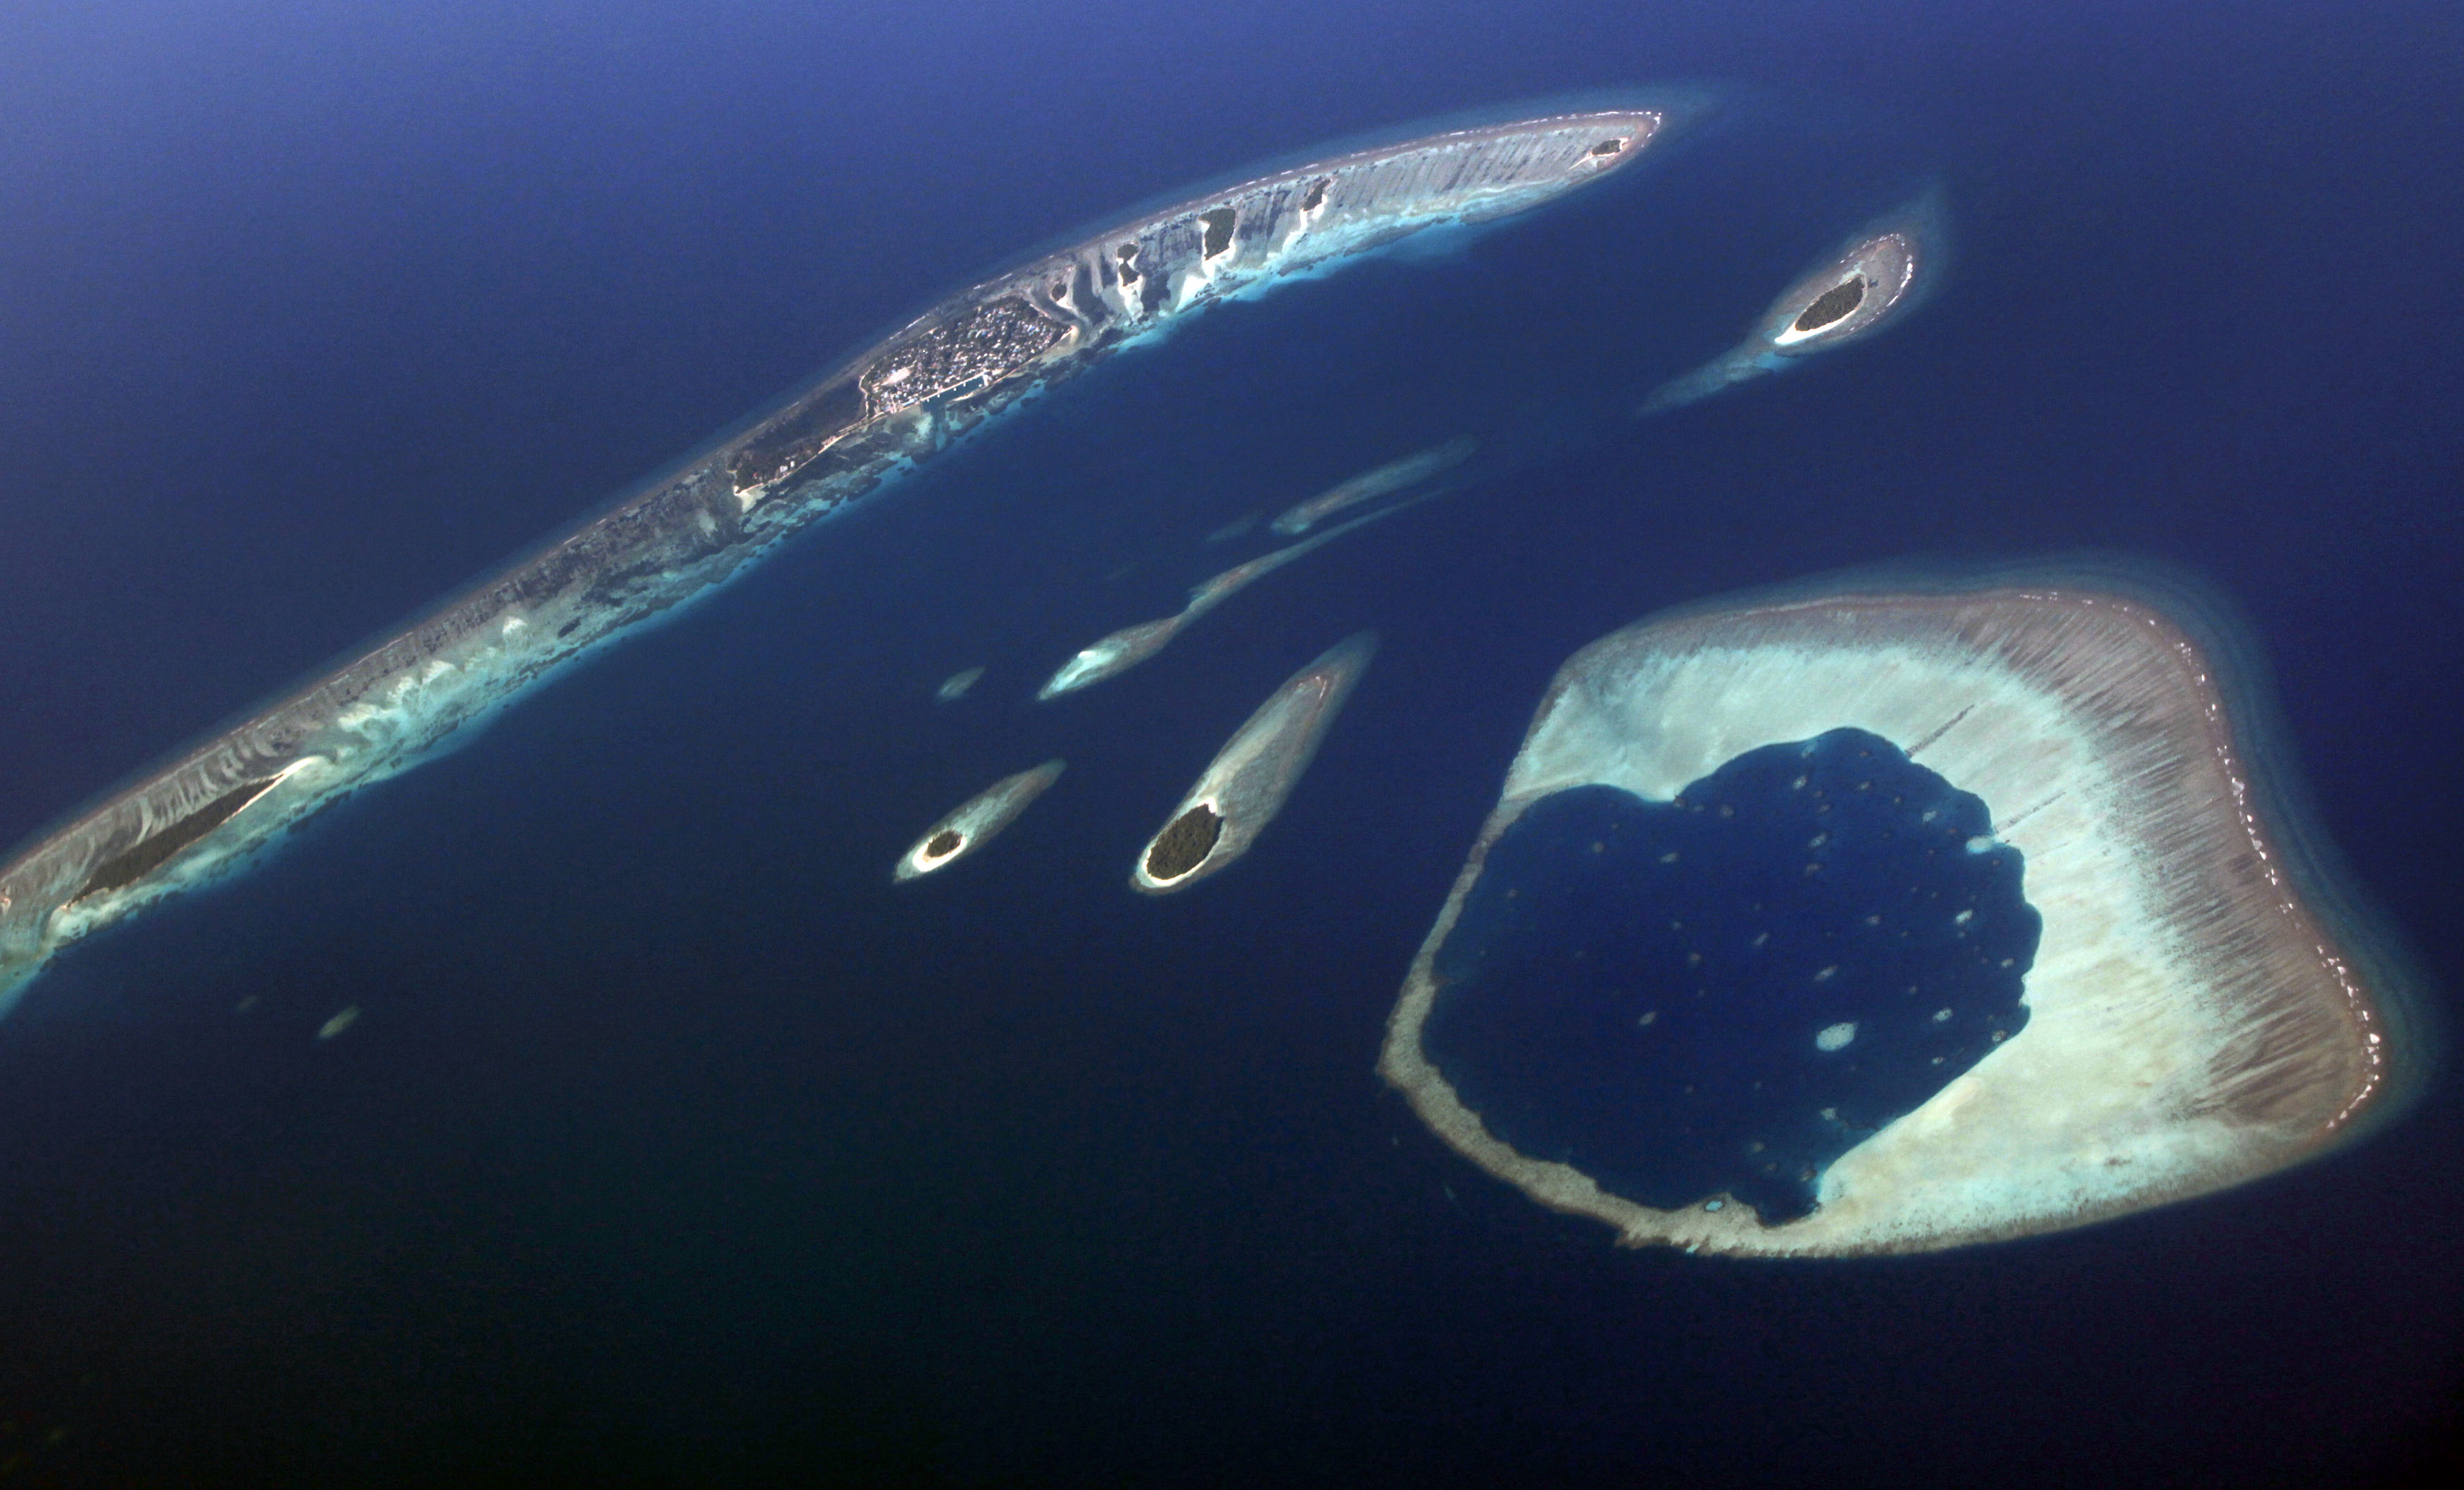 An aerial view shows an atoll in the Maldives December 9, 2009. Maldives has a population of some 400,000 islanders, whose livelihood from fishing and tourism is being hit by climate change. Maldives President Mohamed Nasheed said in November that 2 degrees Celsius warming would risk swamping the sand-rimmed coral atolls and islets, dotted with palm trees and mangrove clumps, that form his small country.REUTERS/Reinhard Krause (MALDIVES - Tags: POLITICS ENVIRONMENT TRAVEL) - GM1E5CE00F501